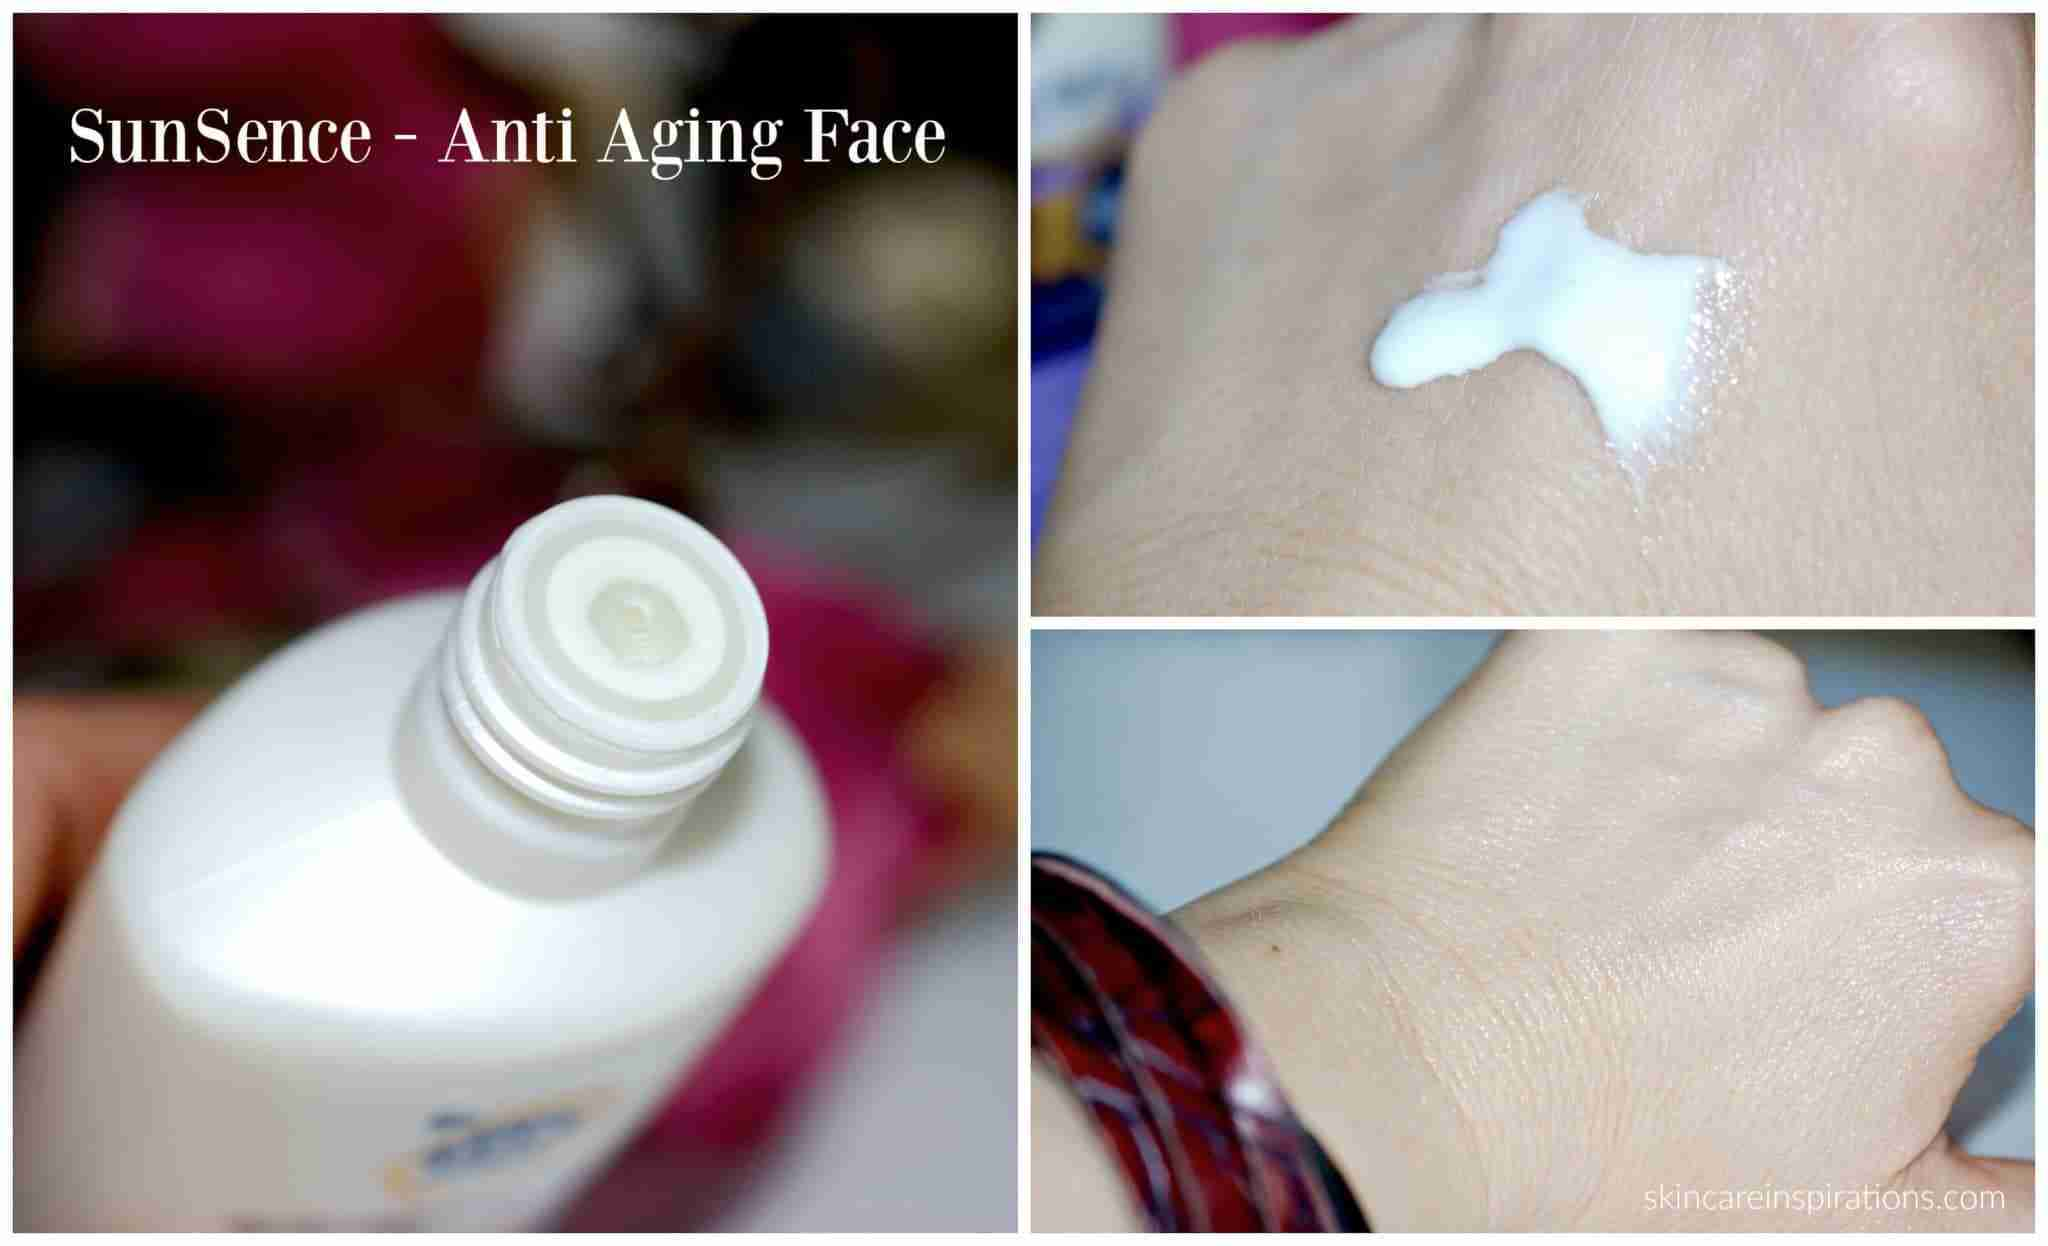 SunSence Anti Aging Face SPF50+